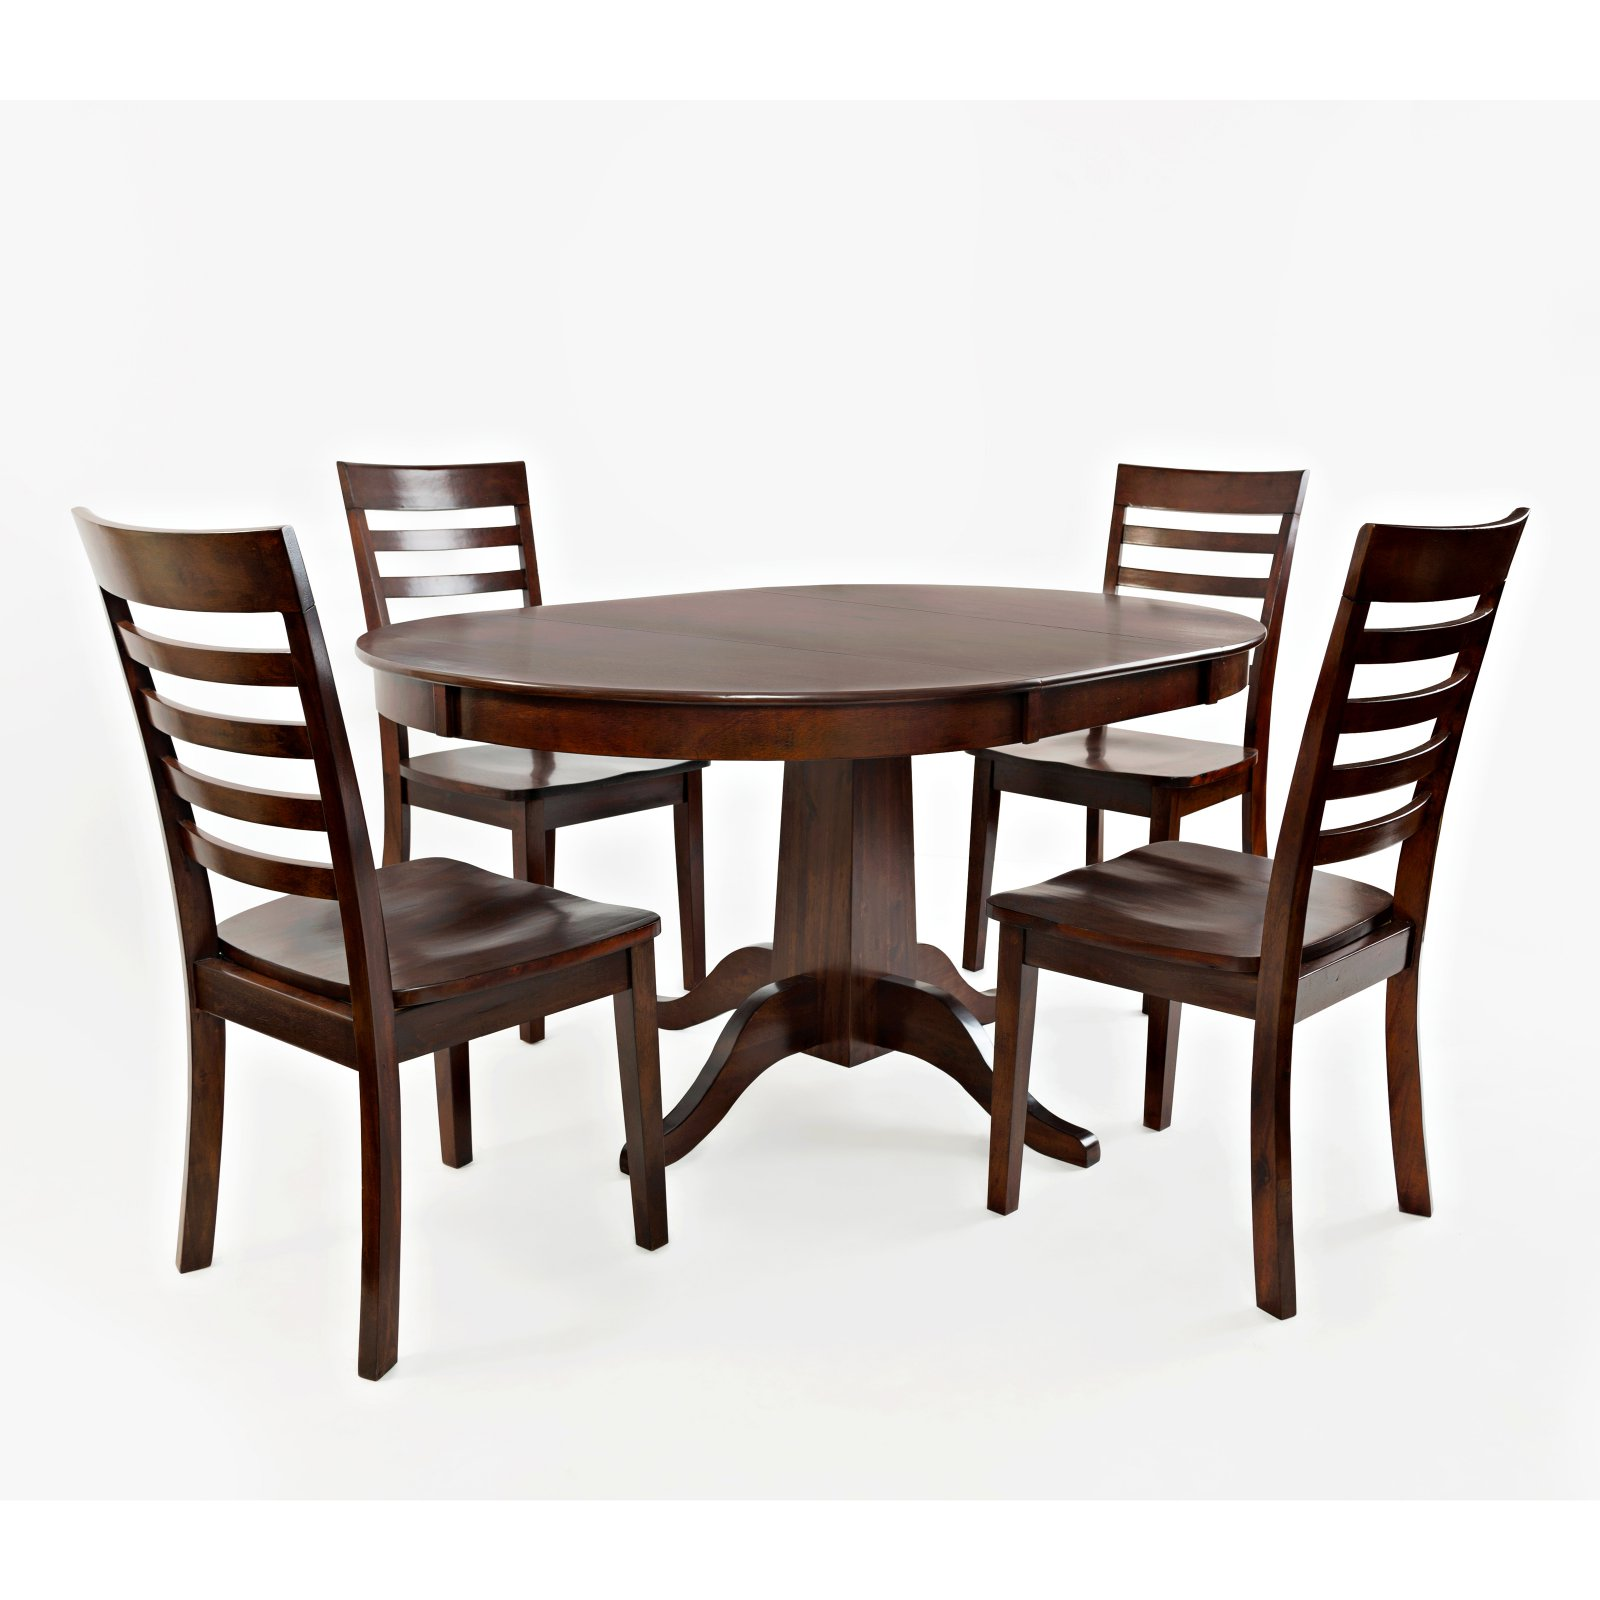 Jofran Everyday Classics 5 Piece Round Extension Dining Table Set with Ladder Back Chairs